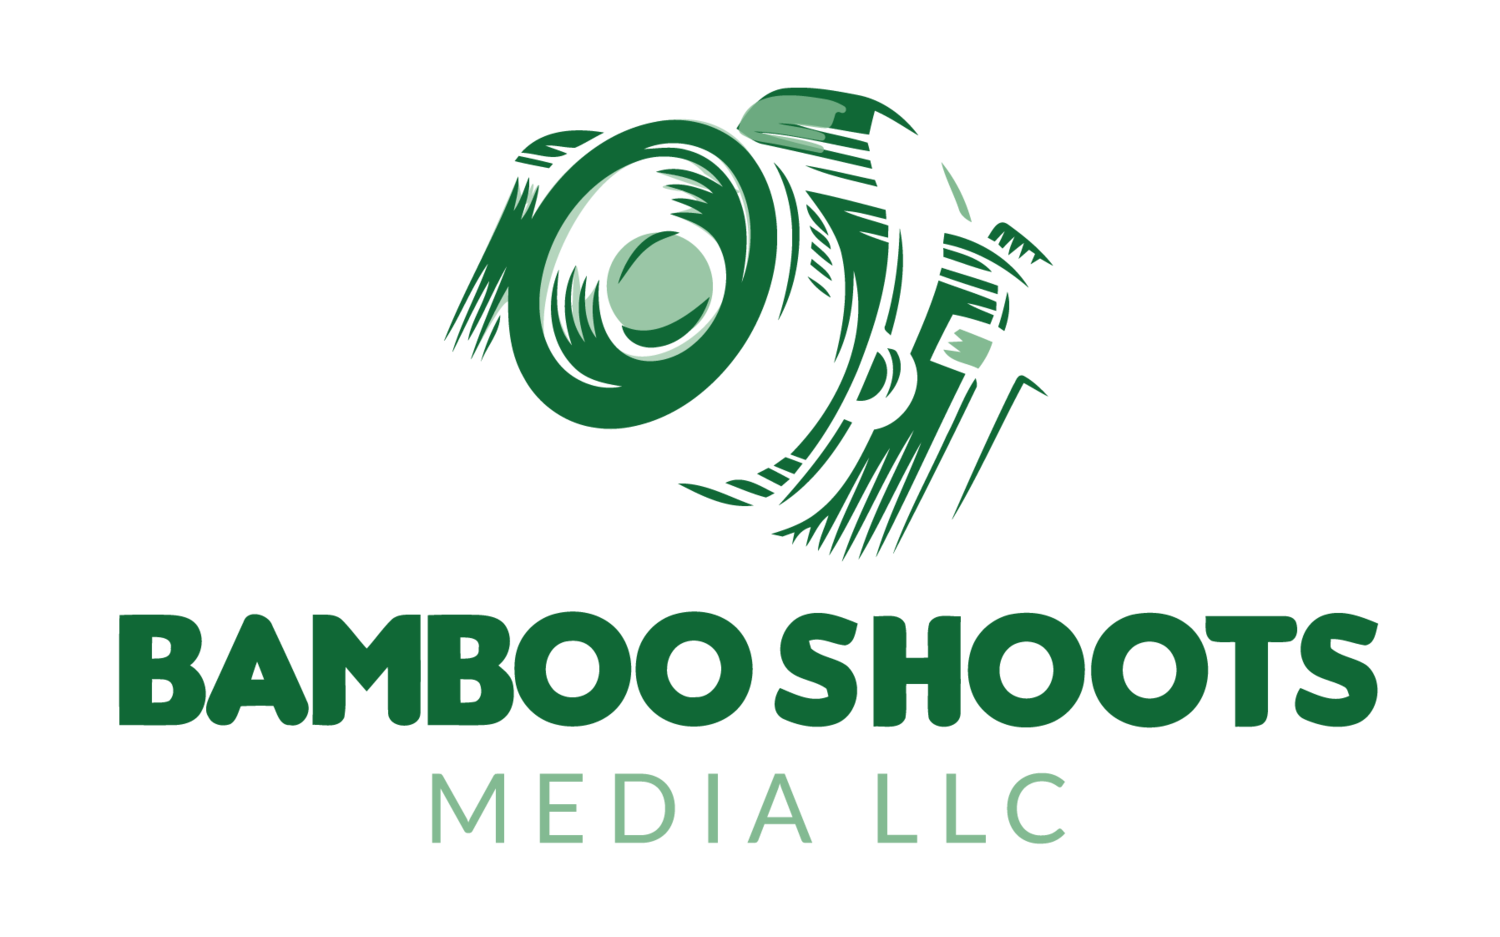 Bamboo Shoots Media LLC